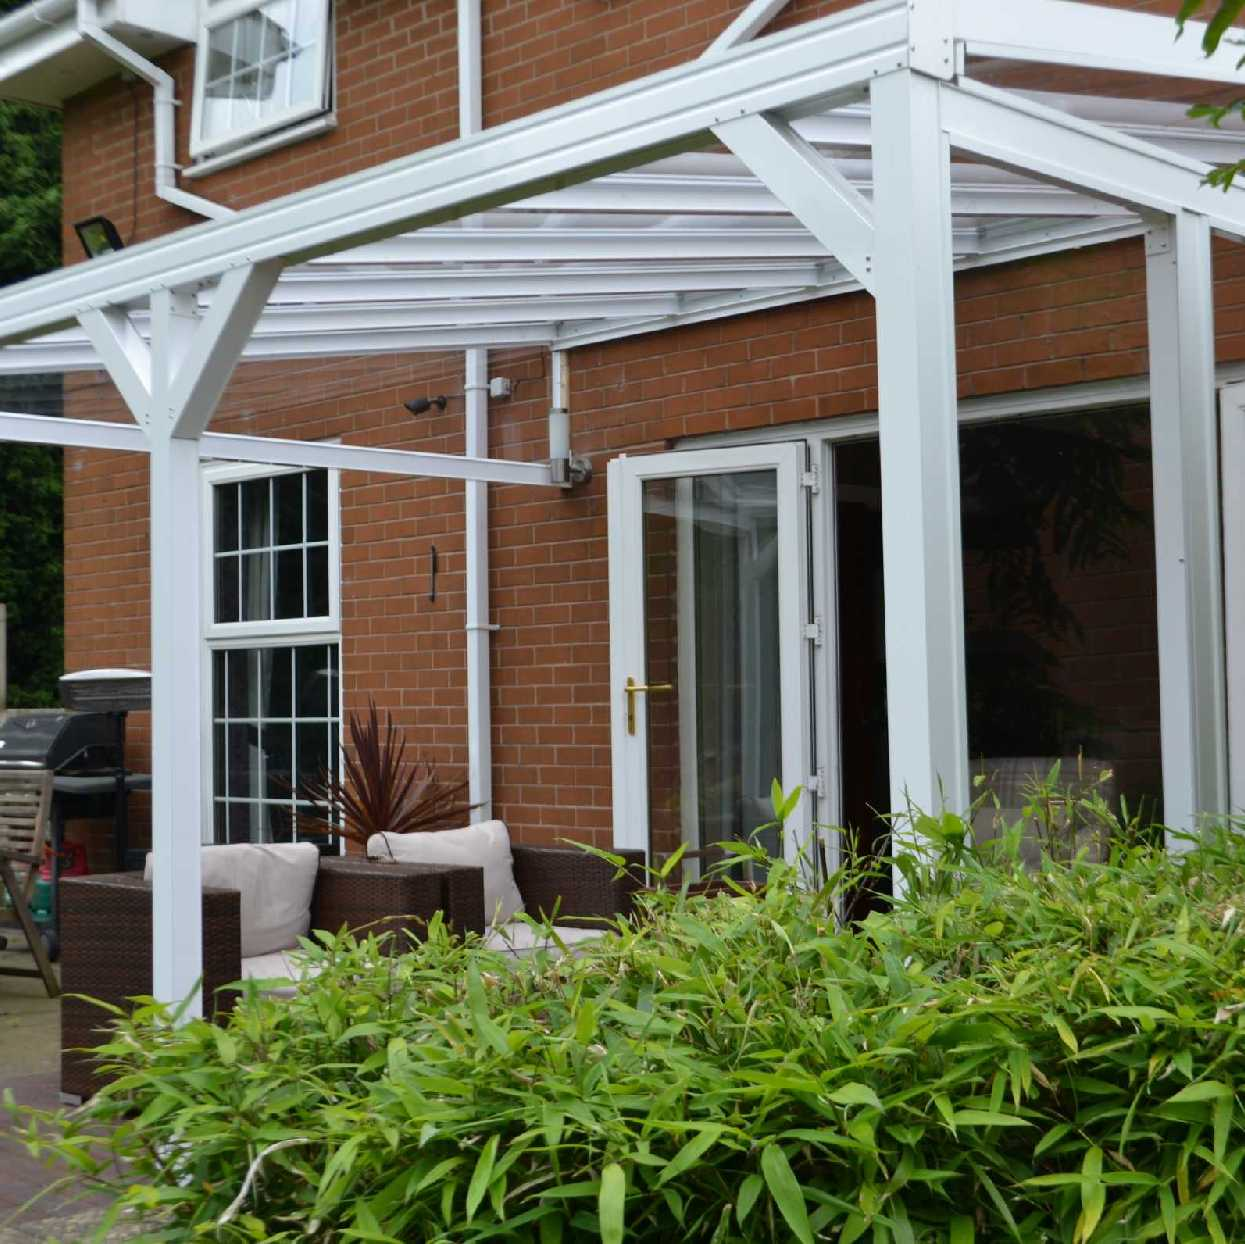 Omega Smart Lean-To Canopy with 6mm Glass Clear Plate Polycarbonate Glazing - 3.5m (W) x 2.0m (P), (3) Supporting Posts from Omega Build